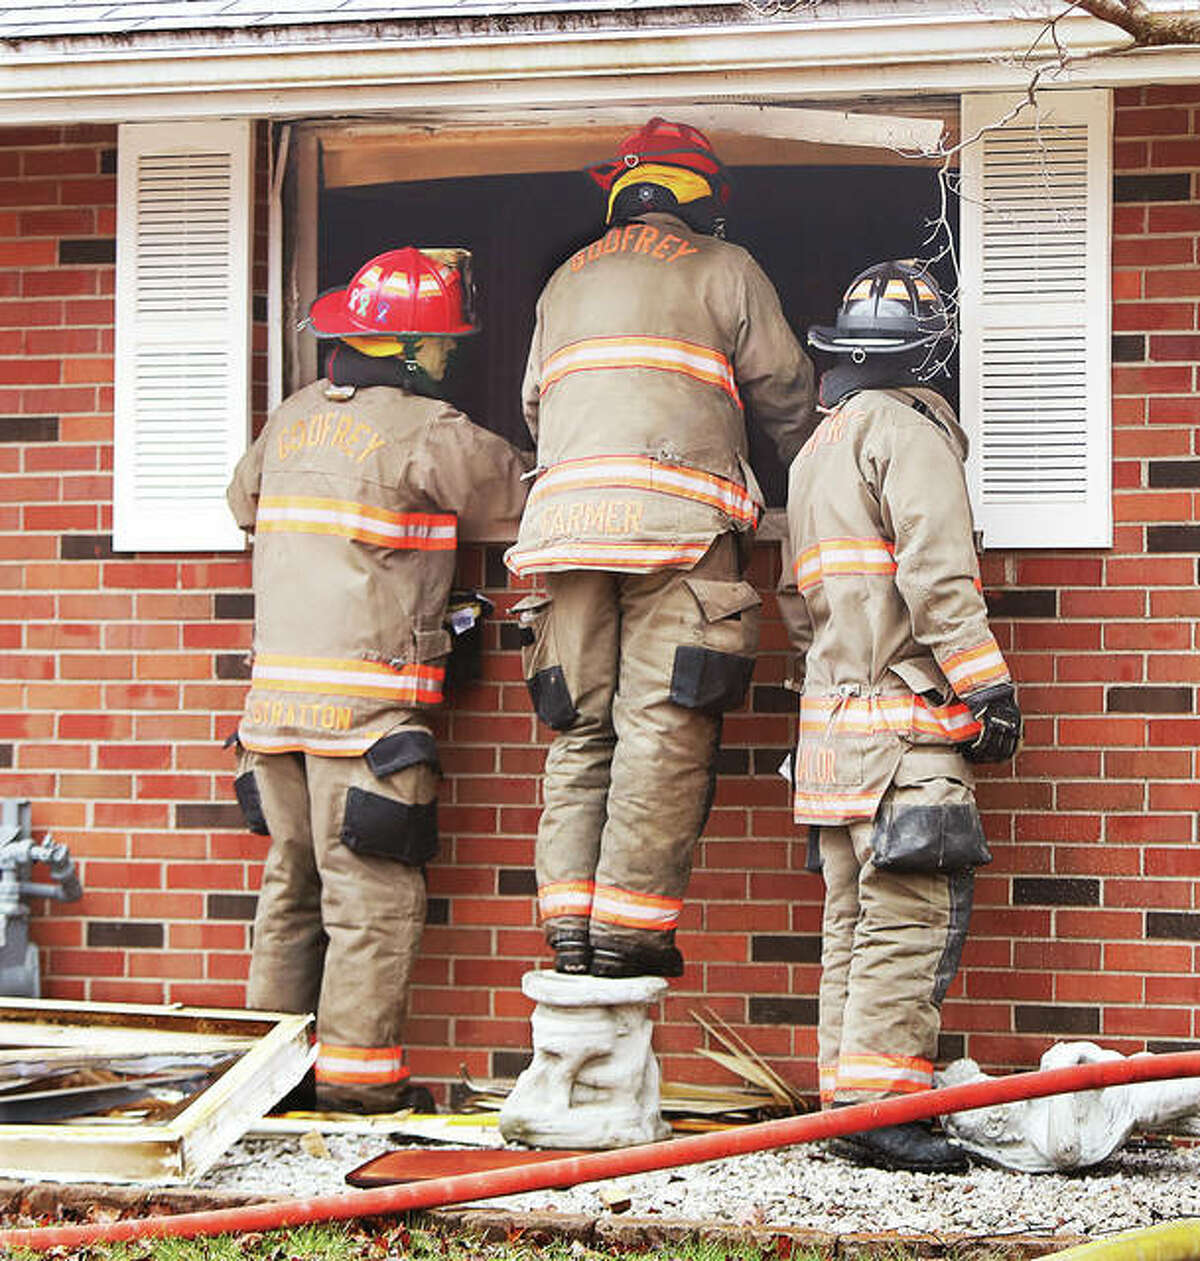 Godfrey firefighters stand and stare through a broken out window into a house Monday morning in the 2300 block of Wedgewood Avenue after extinguishing a fire at that brick home. Firefighters were watching as Illinois State Police Crime Scene investigators and others processed the scene inside where two people were found dead.